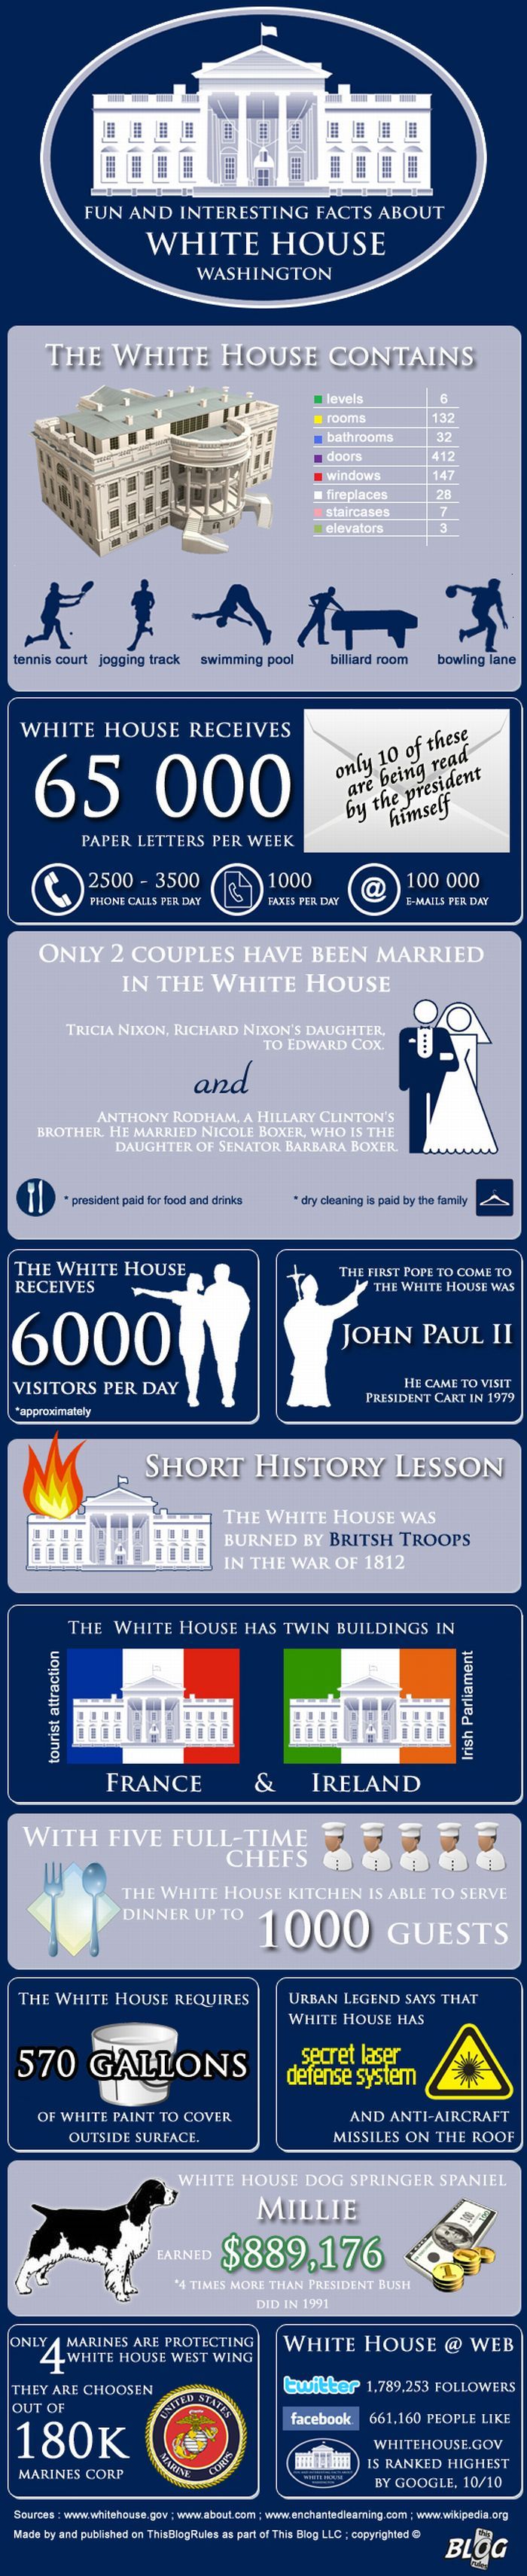 Fun Facts About The White House Rooms